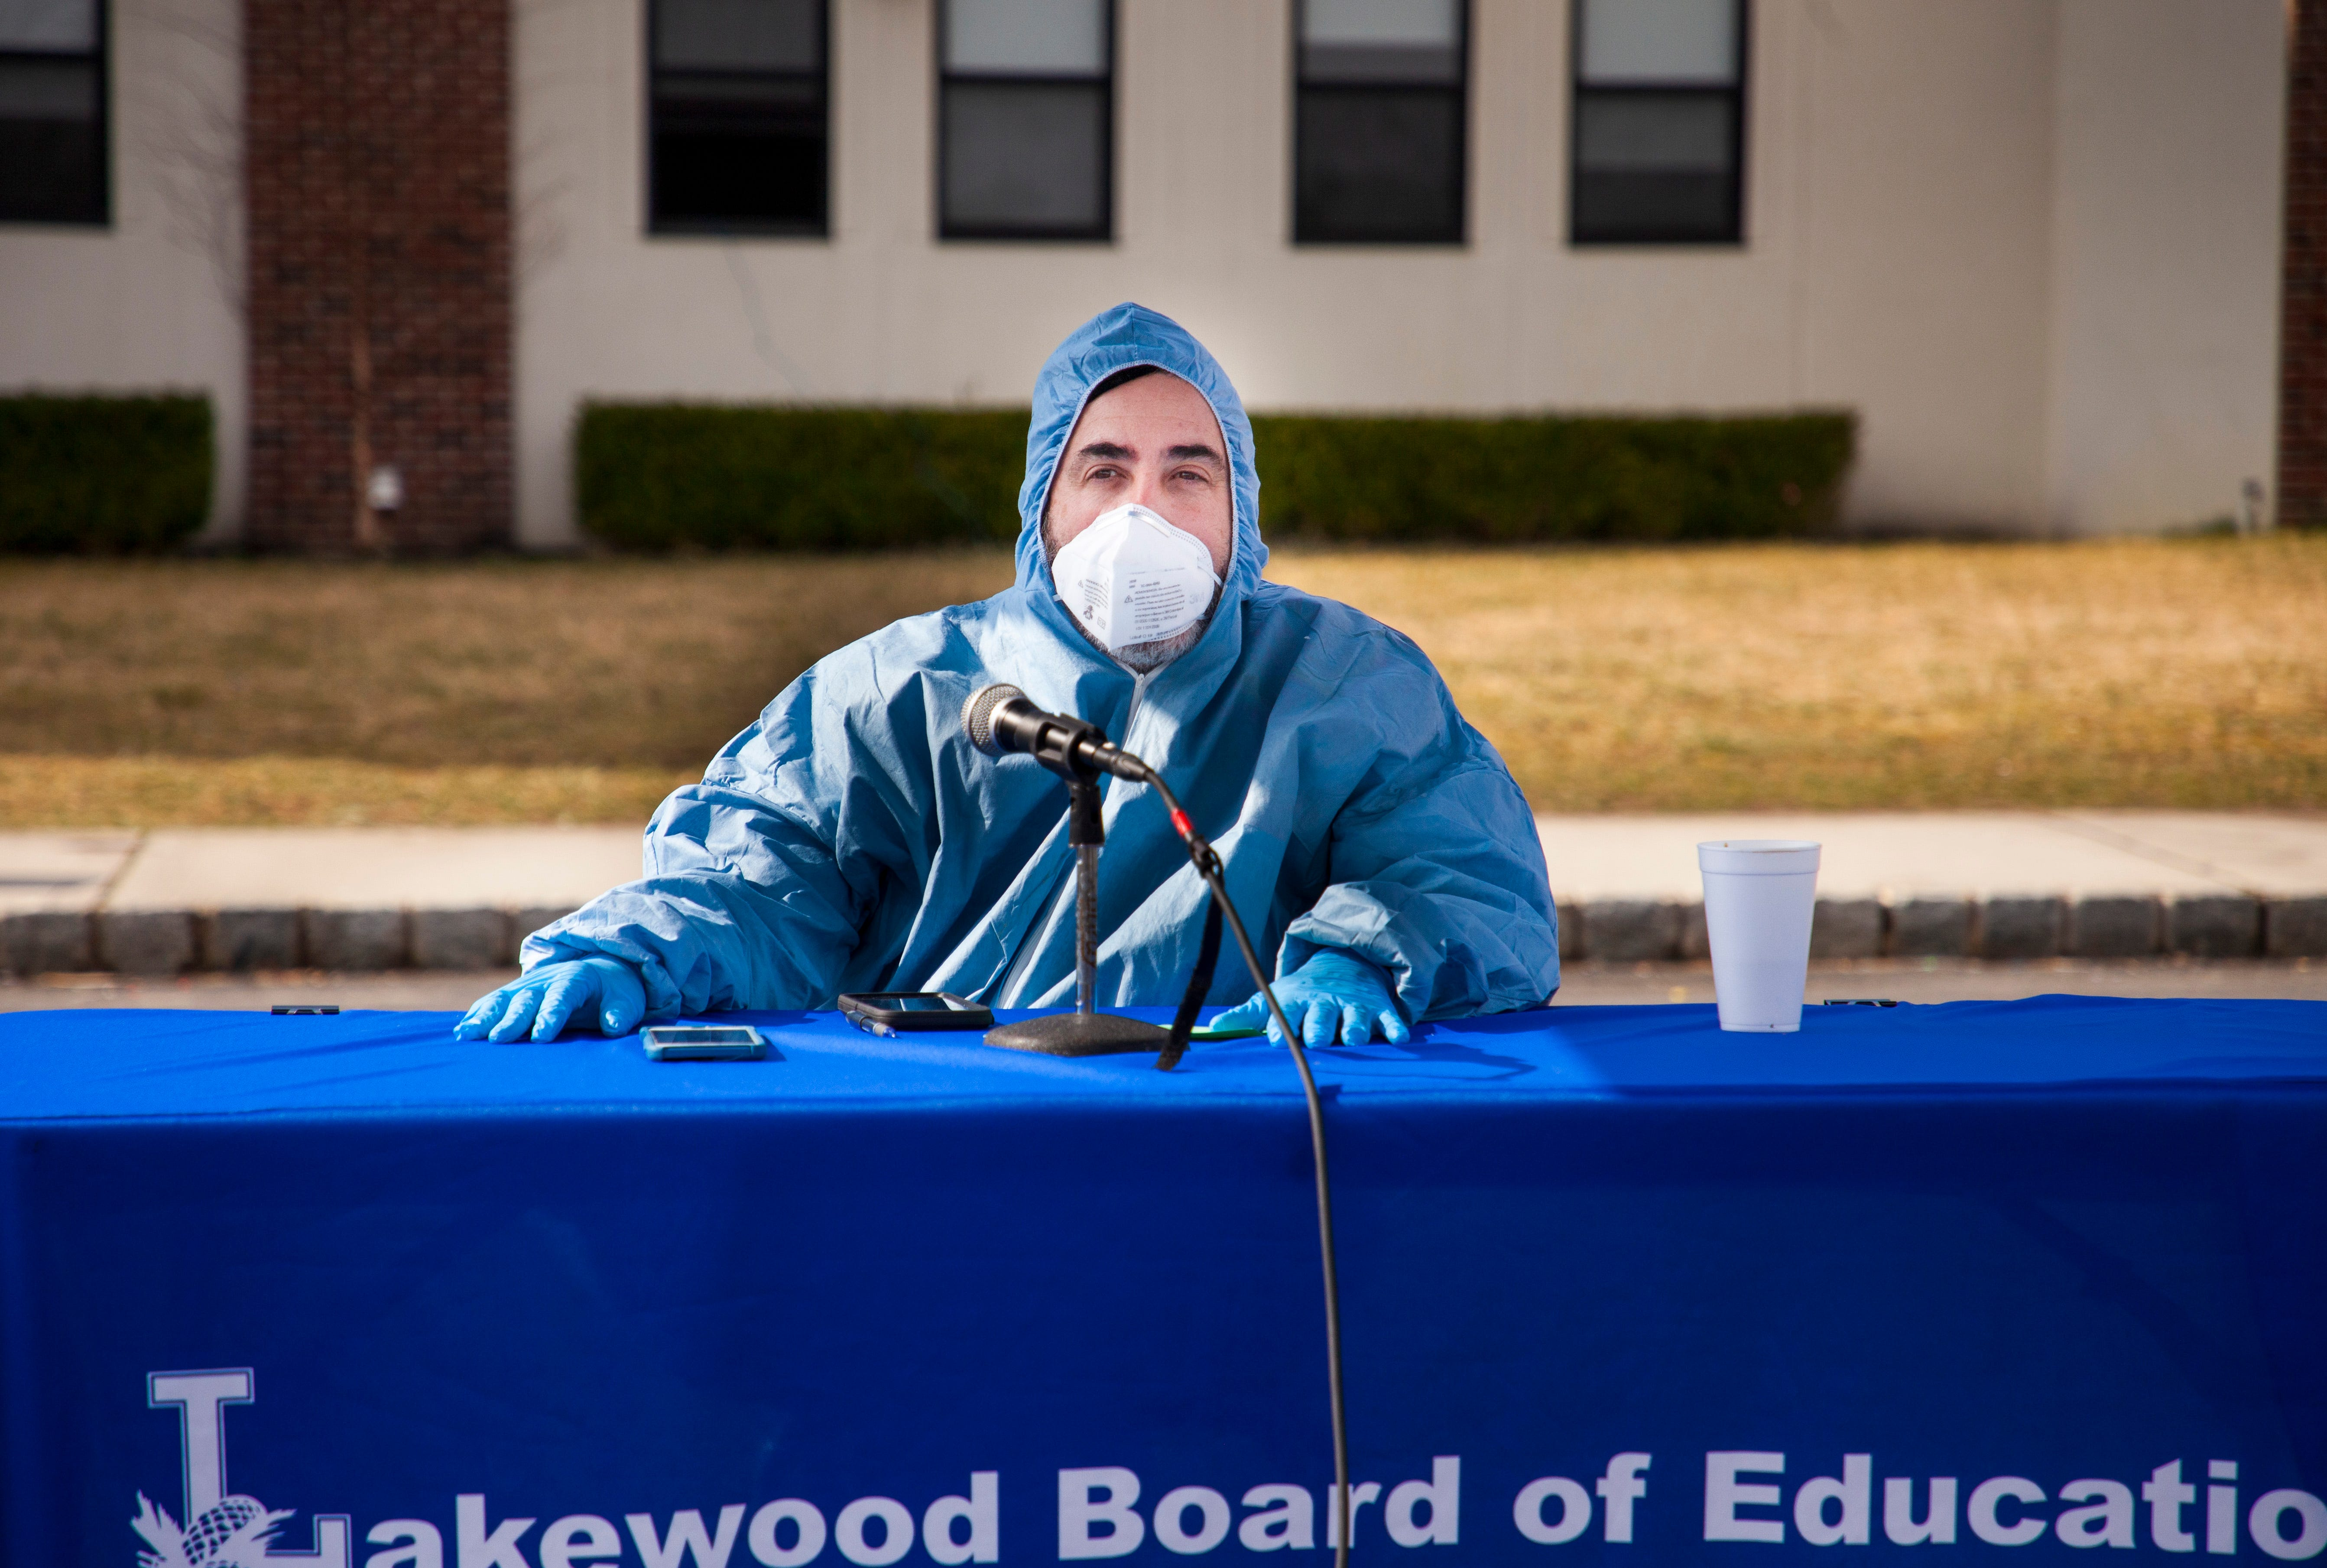 In this March 20, 2020, photograph, Michael Inzelbuch, Lakewood Board of Education attorney and spokesperson, wears personal protective equipment during one of his daily updates from the parking lot of a non-public school. During the coronavirus pandemic, Inzelbuch streamed his daily updates online from different locations.